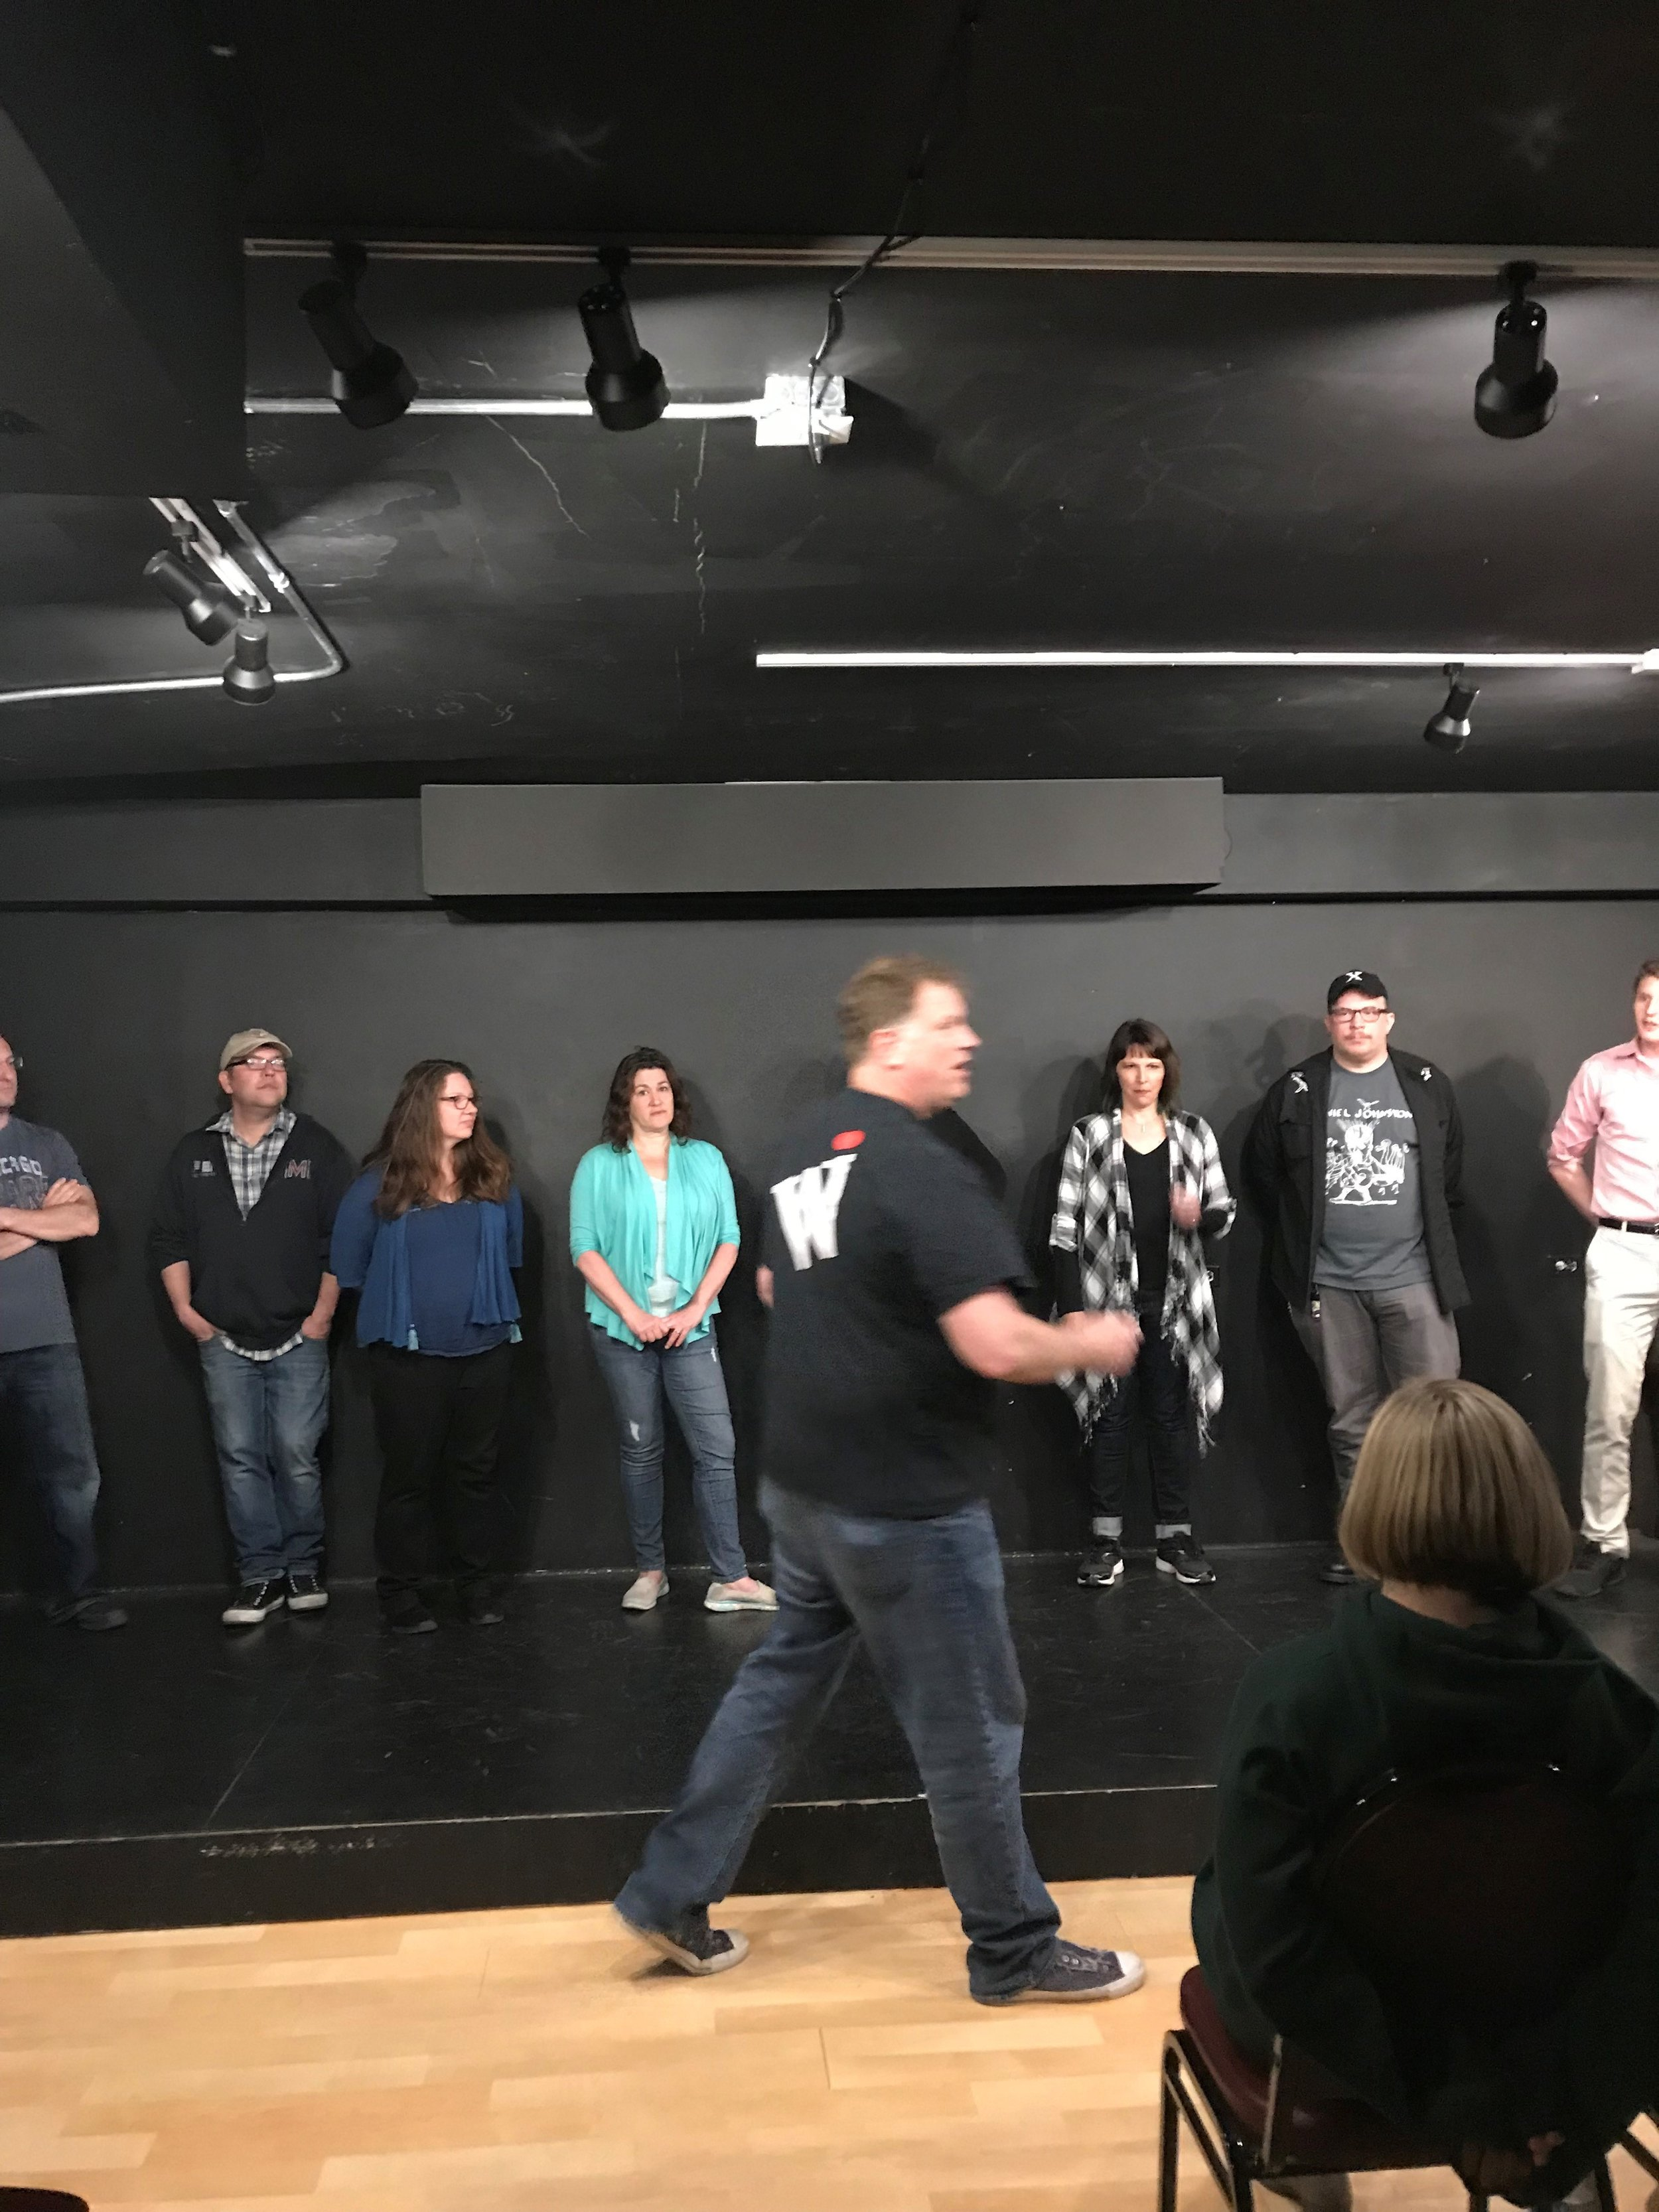 Westside Improv founder Jeff Ash coaches students during a class at the theater space in downtown Wheaton.